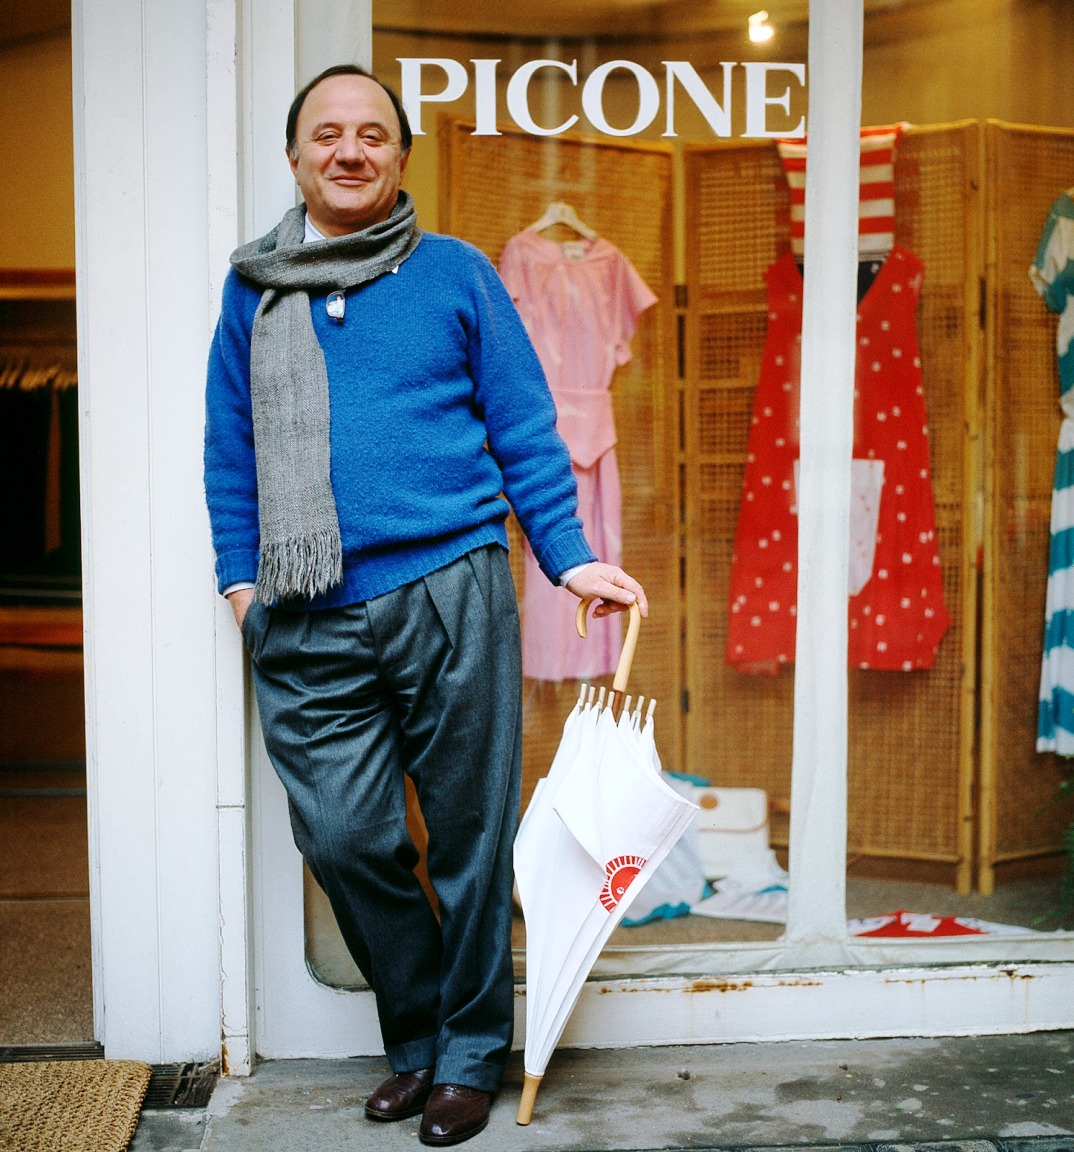 giuseppe picone and his umbrella